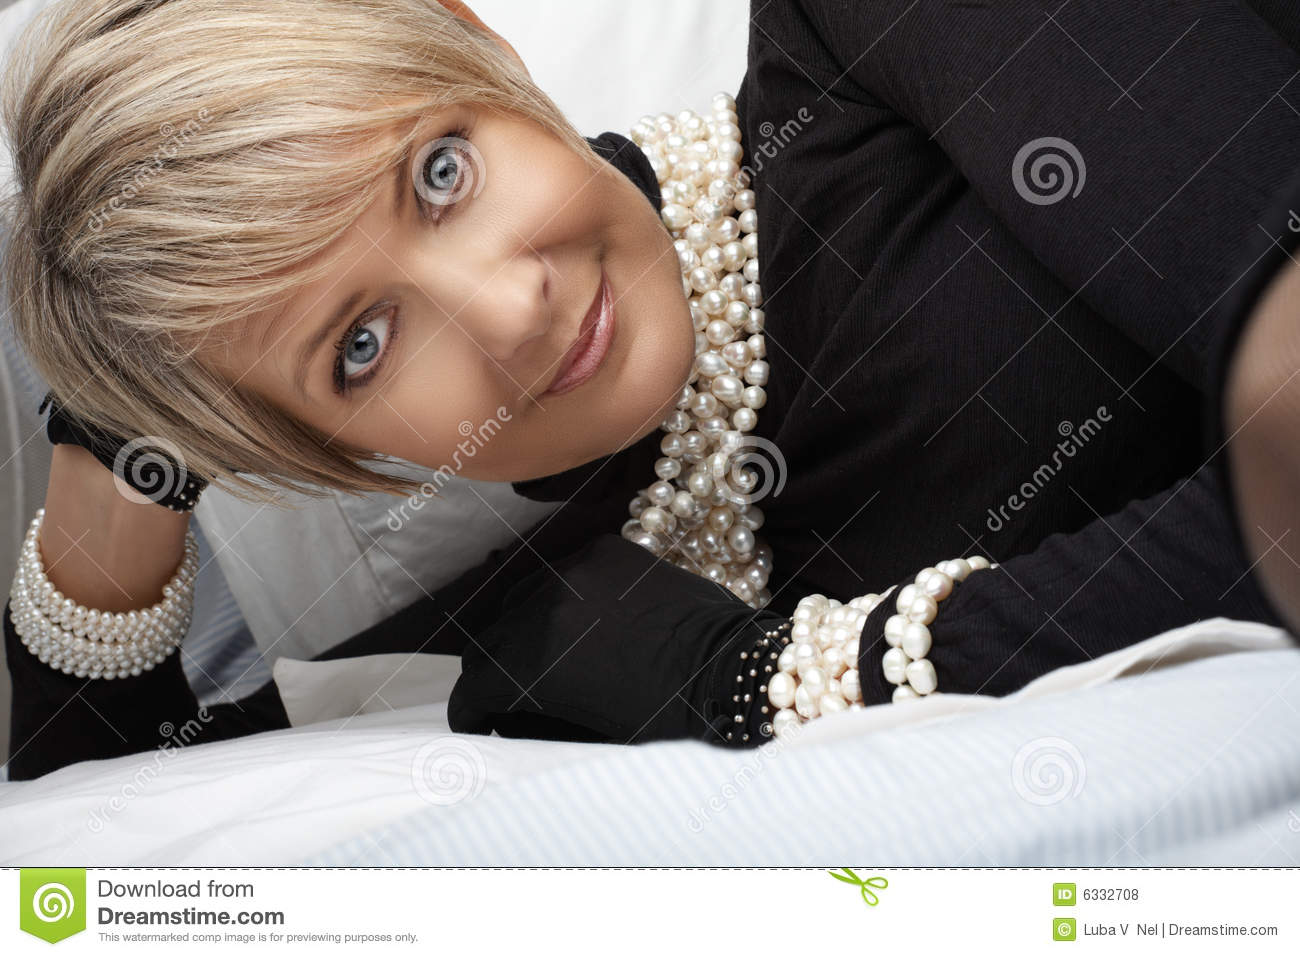 Woman in pearls in her 40s